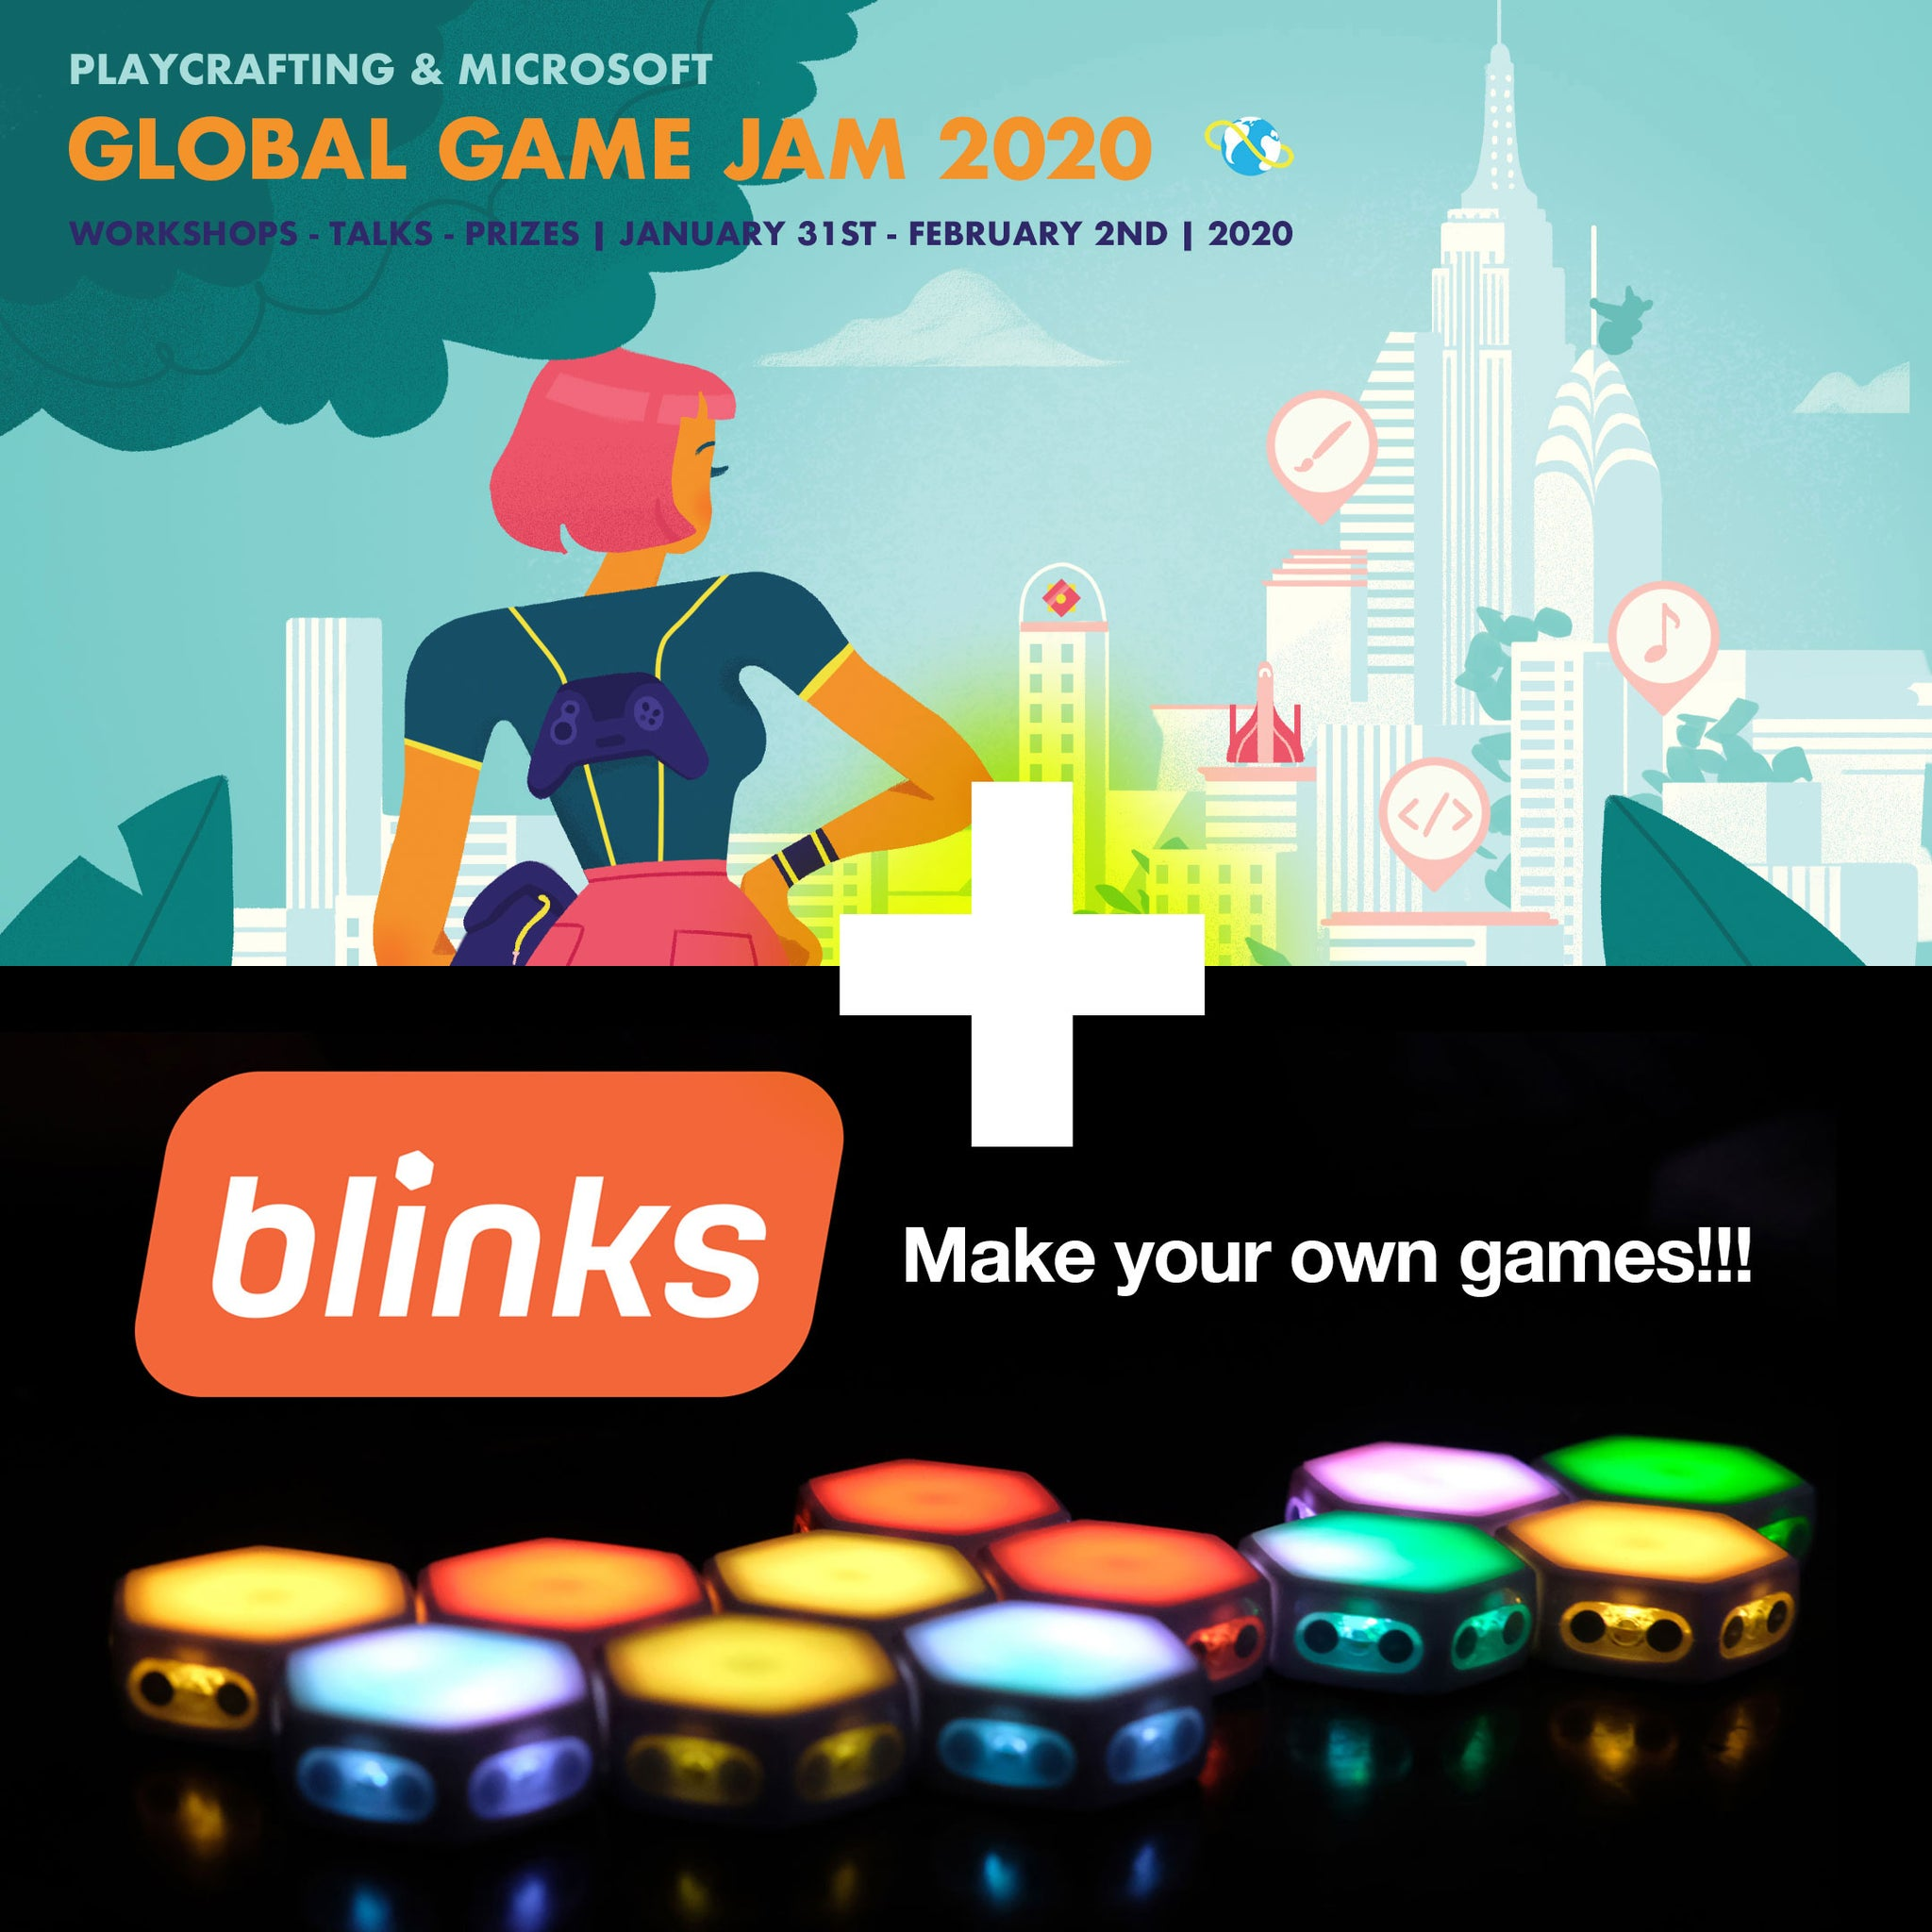 Bringing Blinks to the Global Game Jam